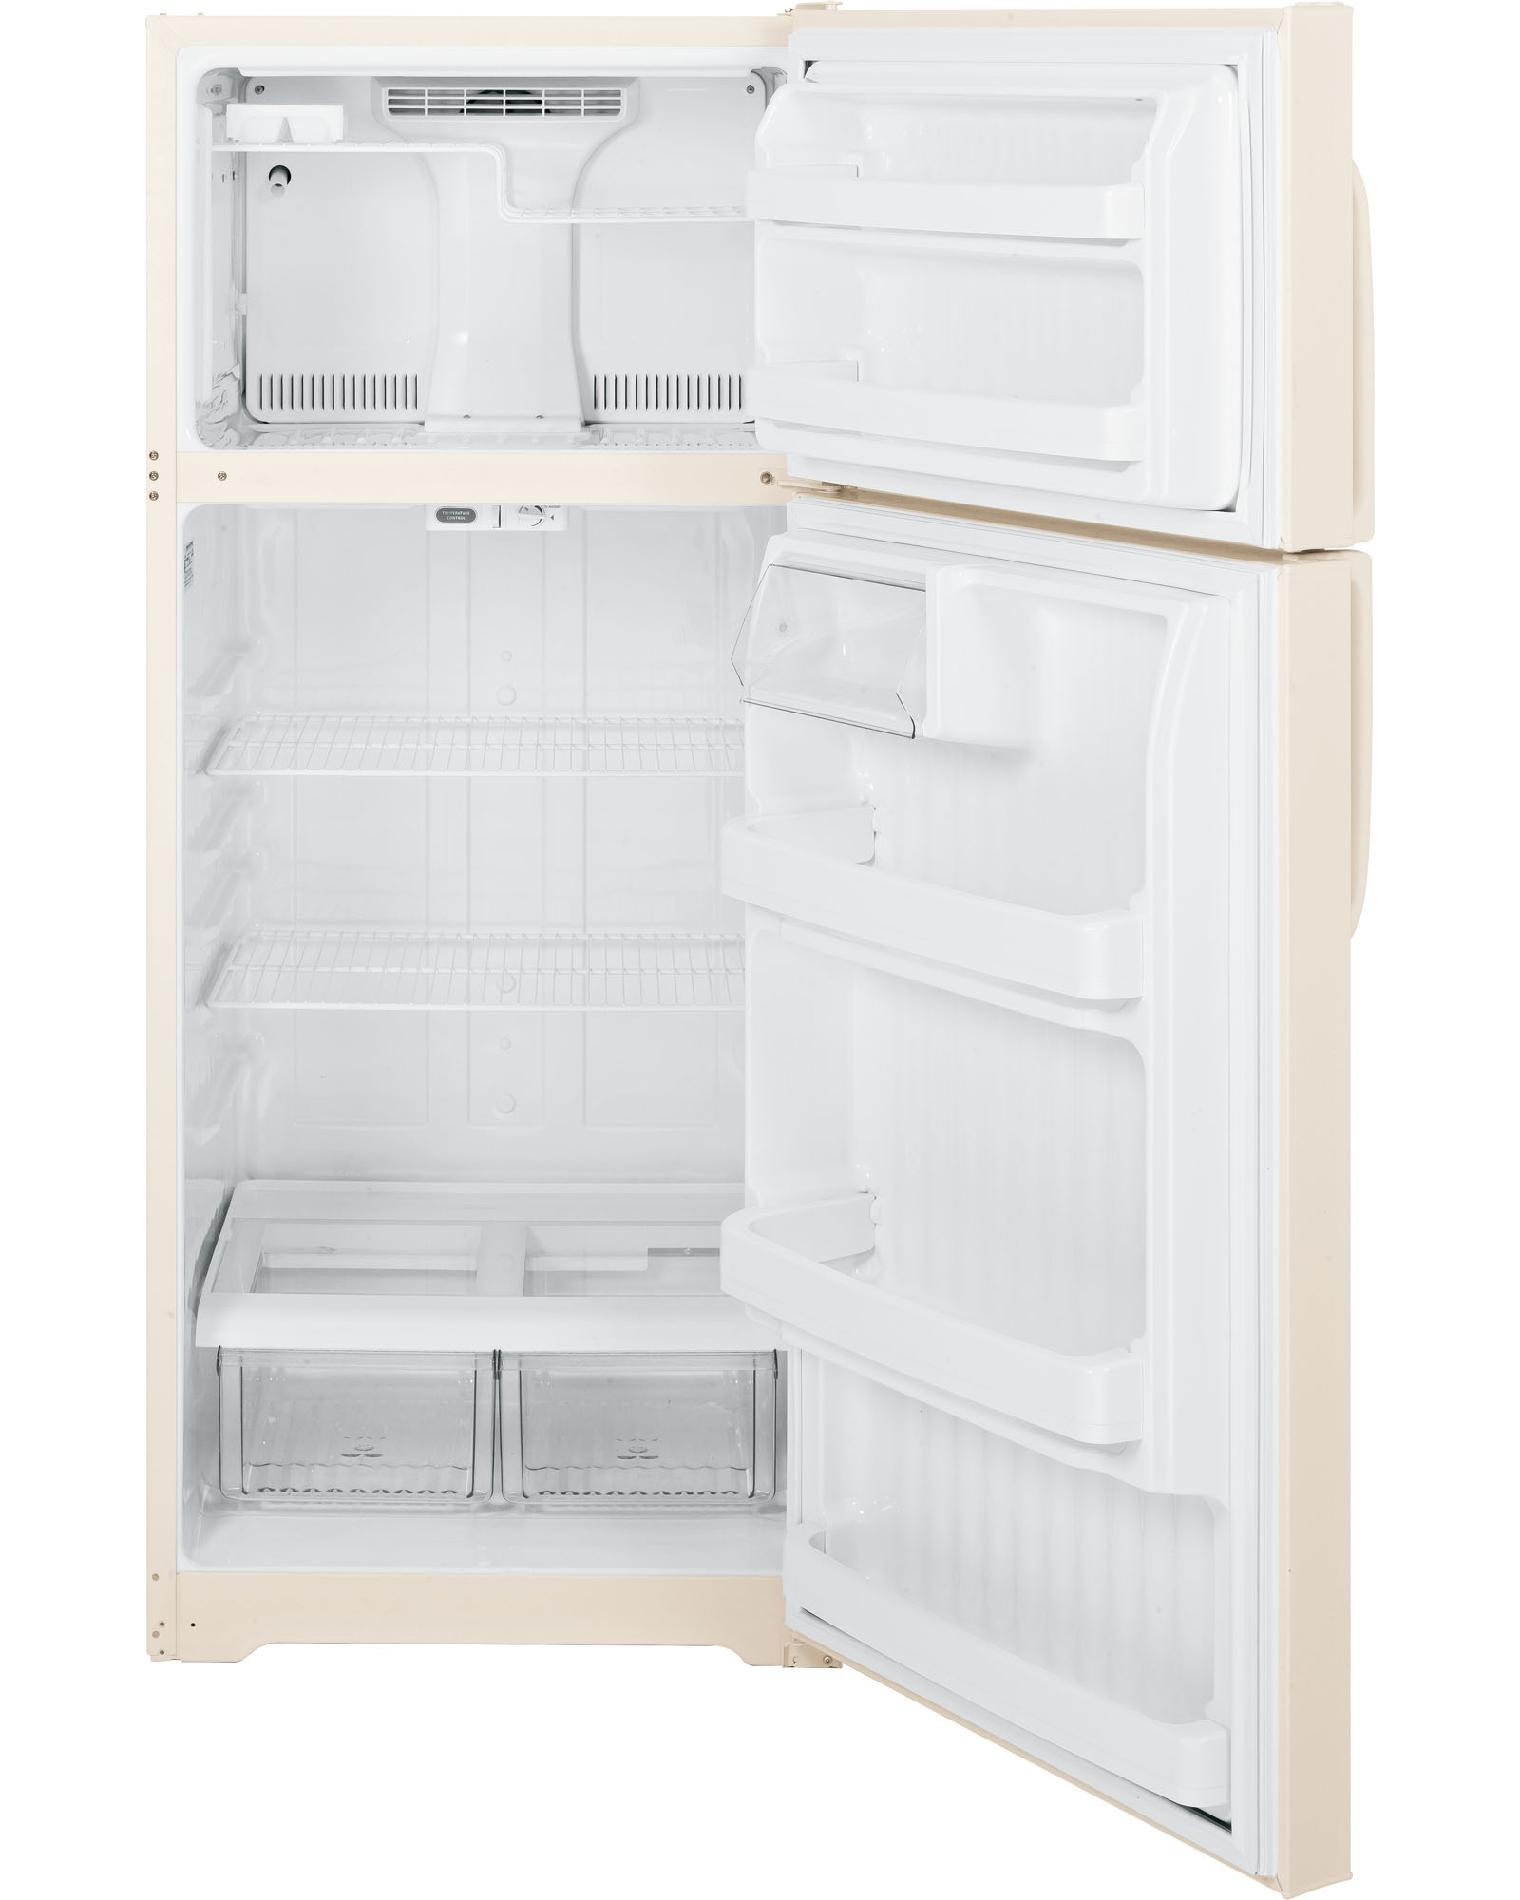 GE 18.1 cu. ft. Top-Freezer Refrigerator - Bisque